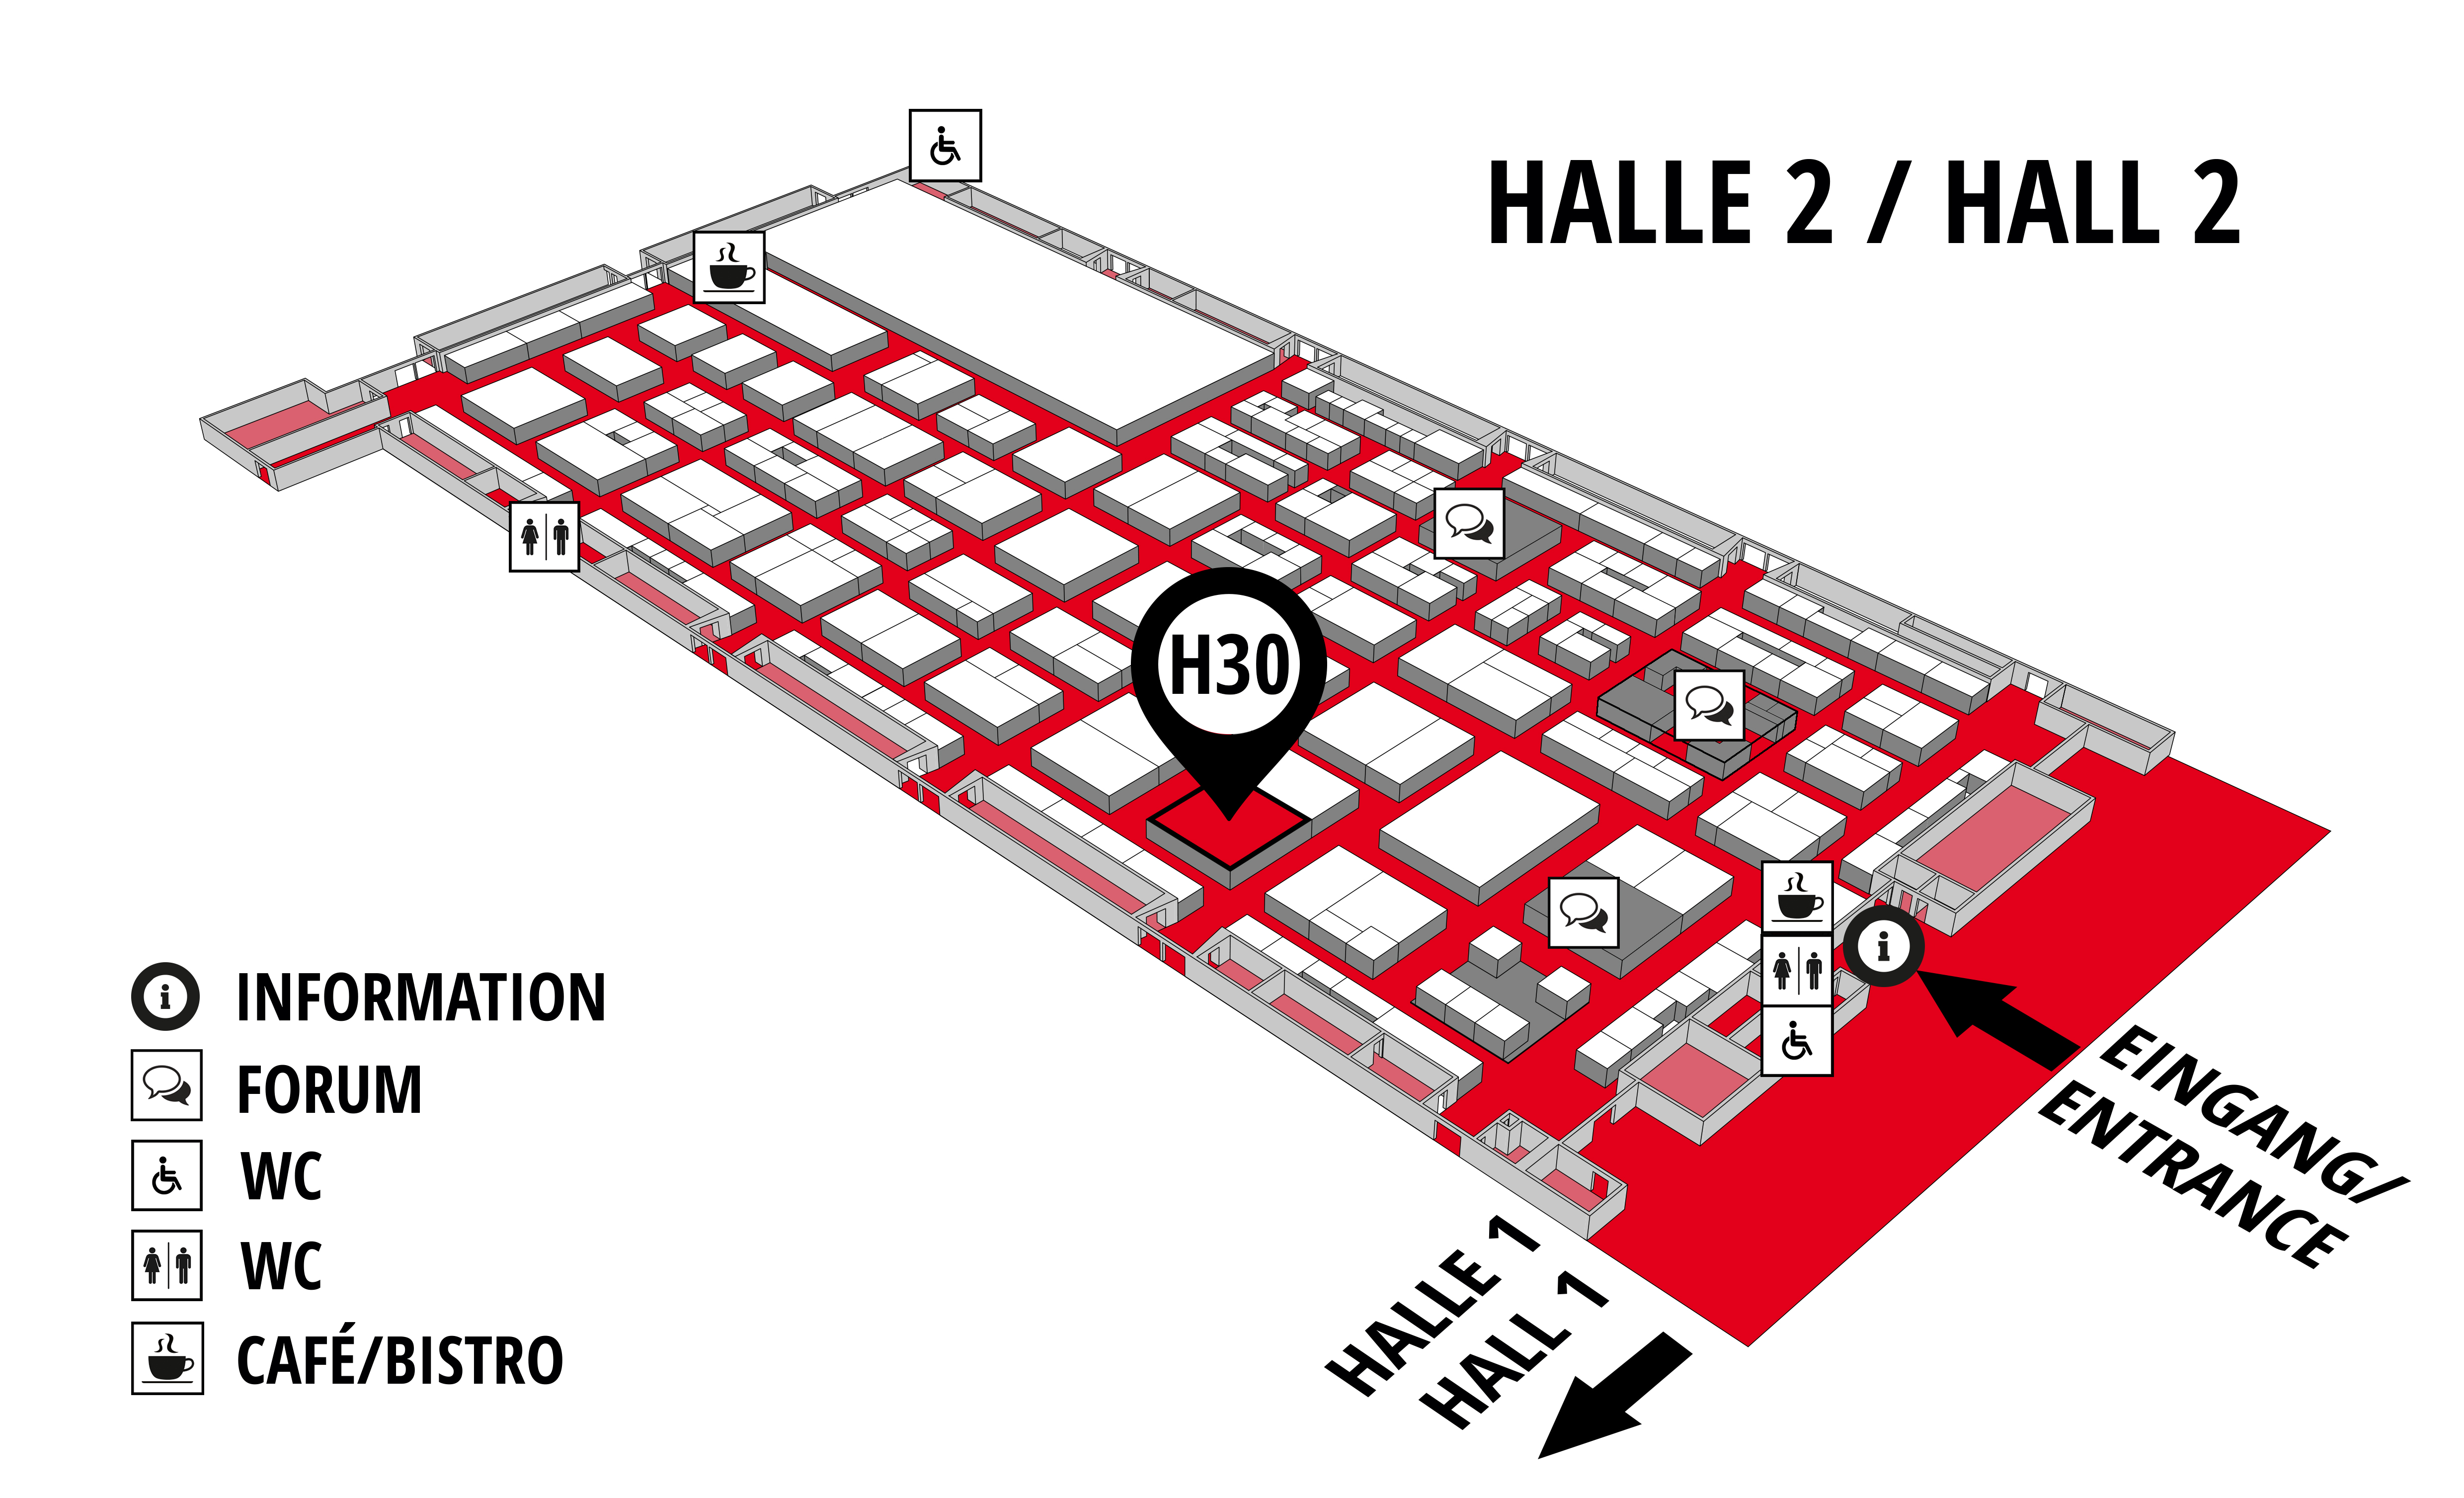 REHAB - Rehabilitation | Therapy | Care | Inclusion hall map (Hall 2): stand H30